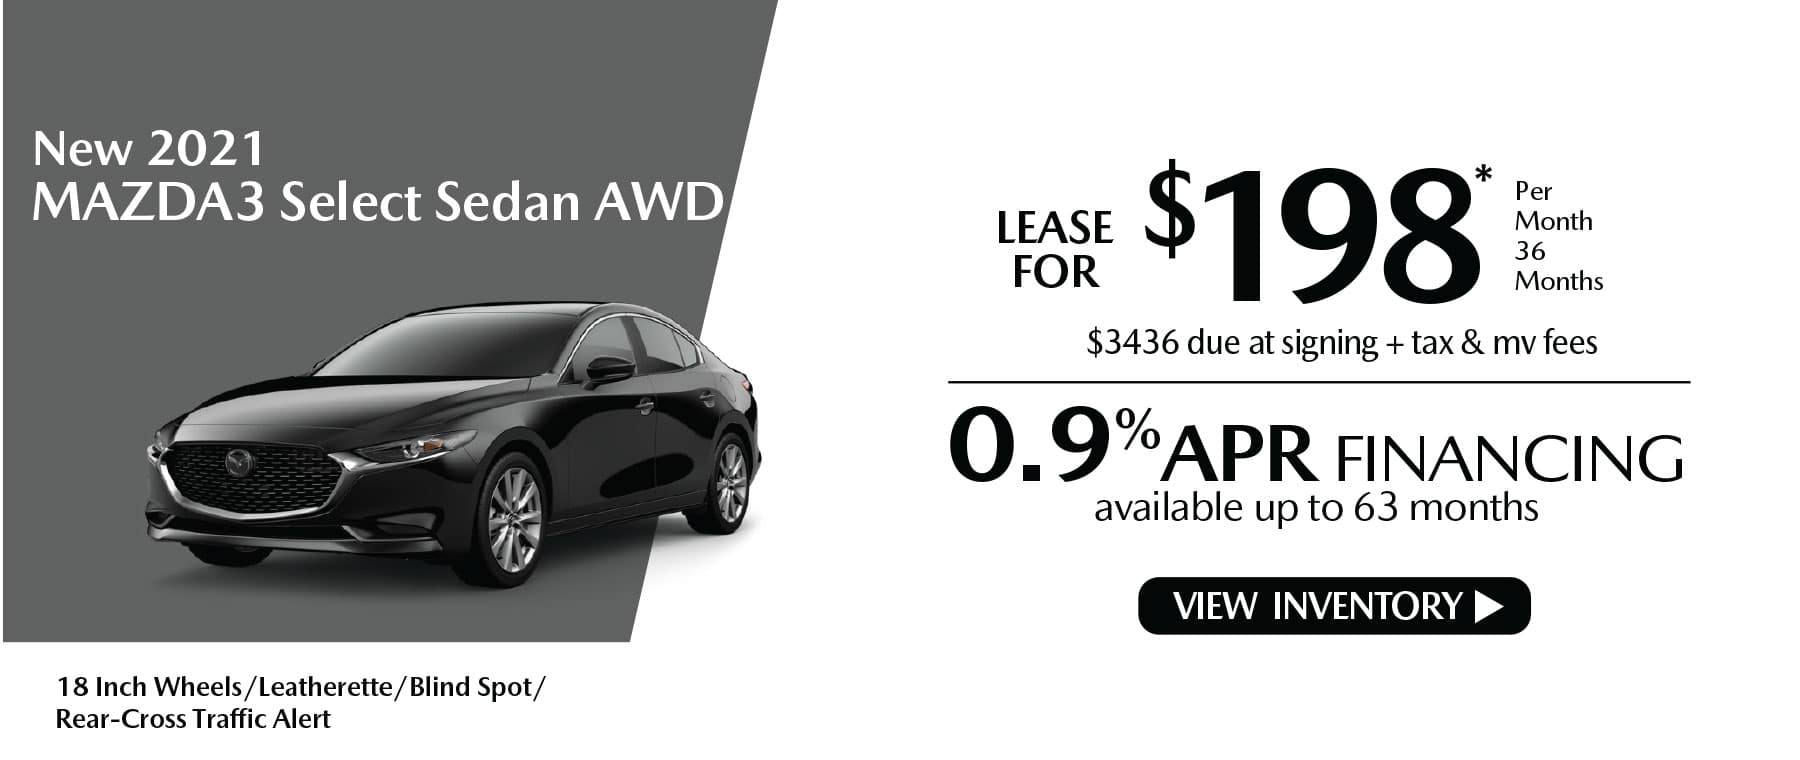 nhi MAZDA3 New Lease Special Offer Mazda of New Rochelle NY